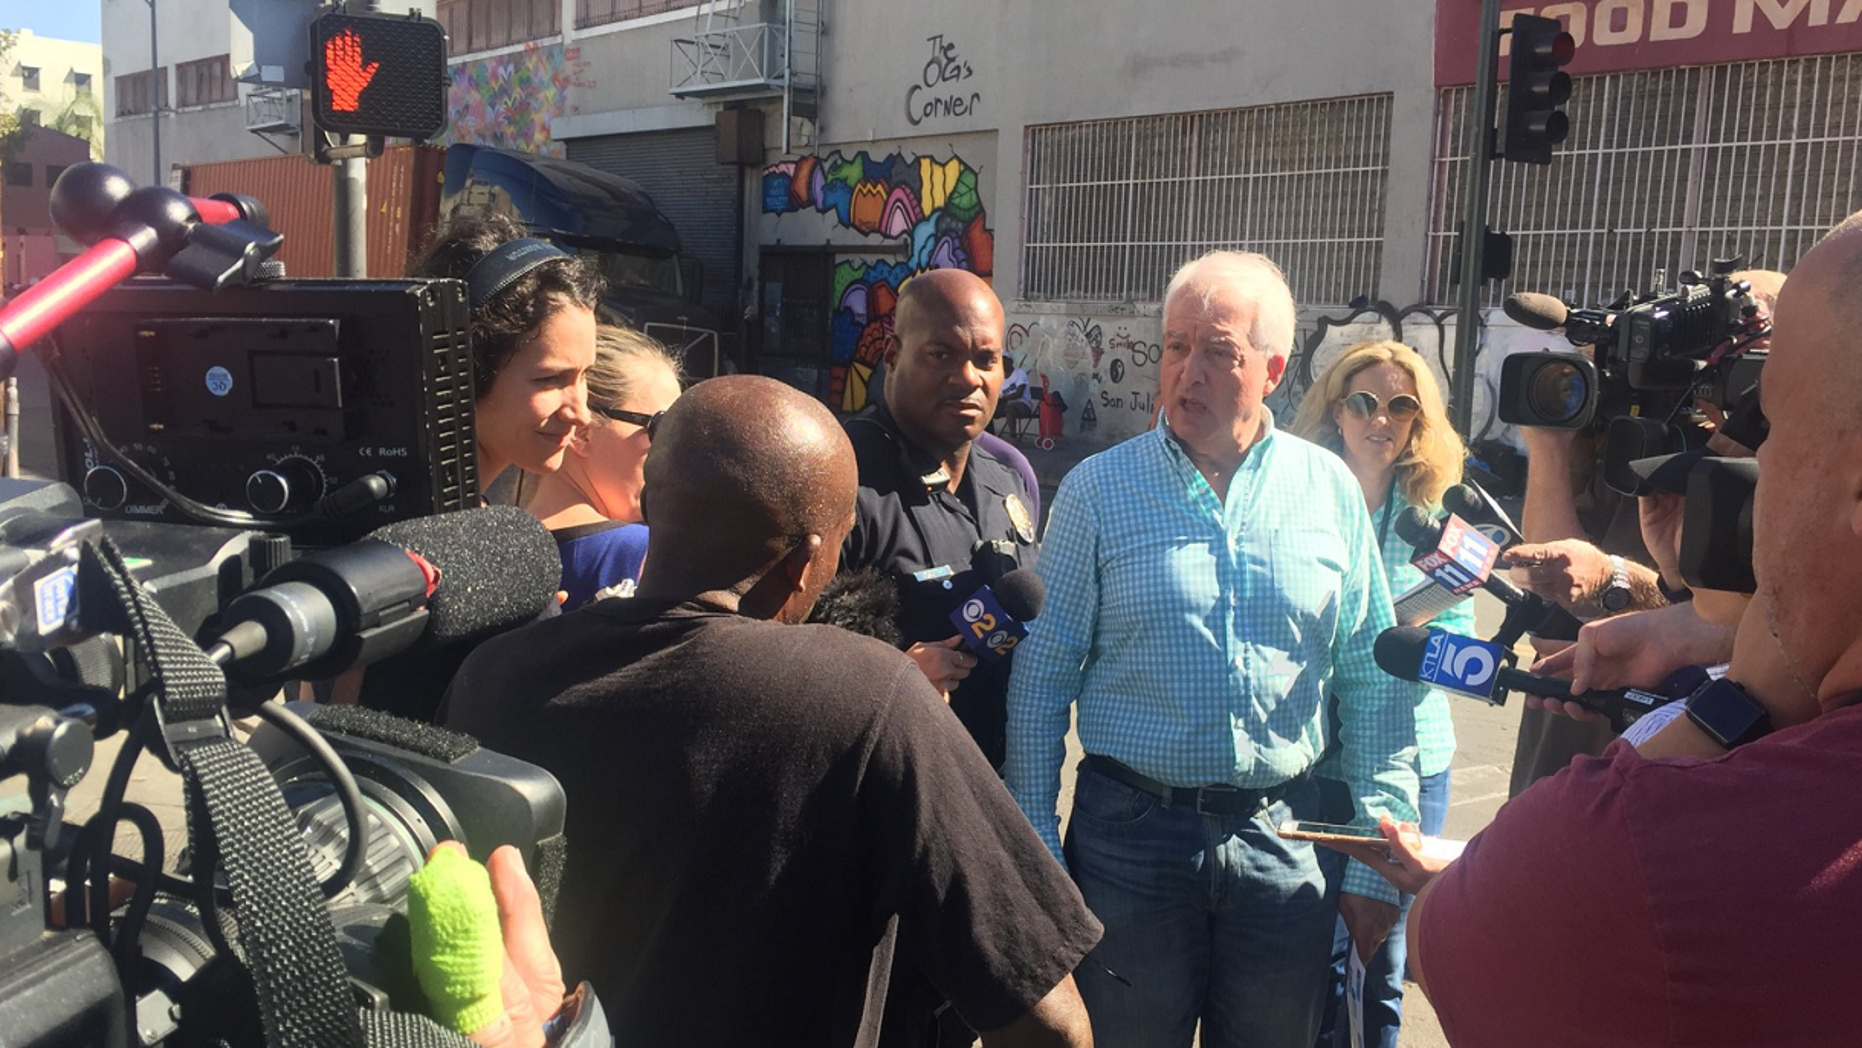 Republican gubernatorial candidate, fourth from right, talking to reporters while touring Los Angeles' skid row on Tuesday.